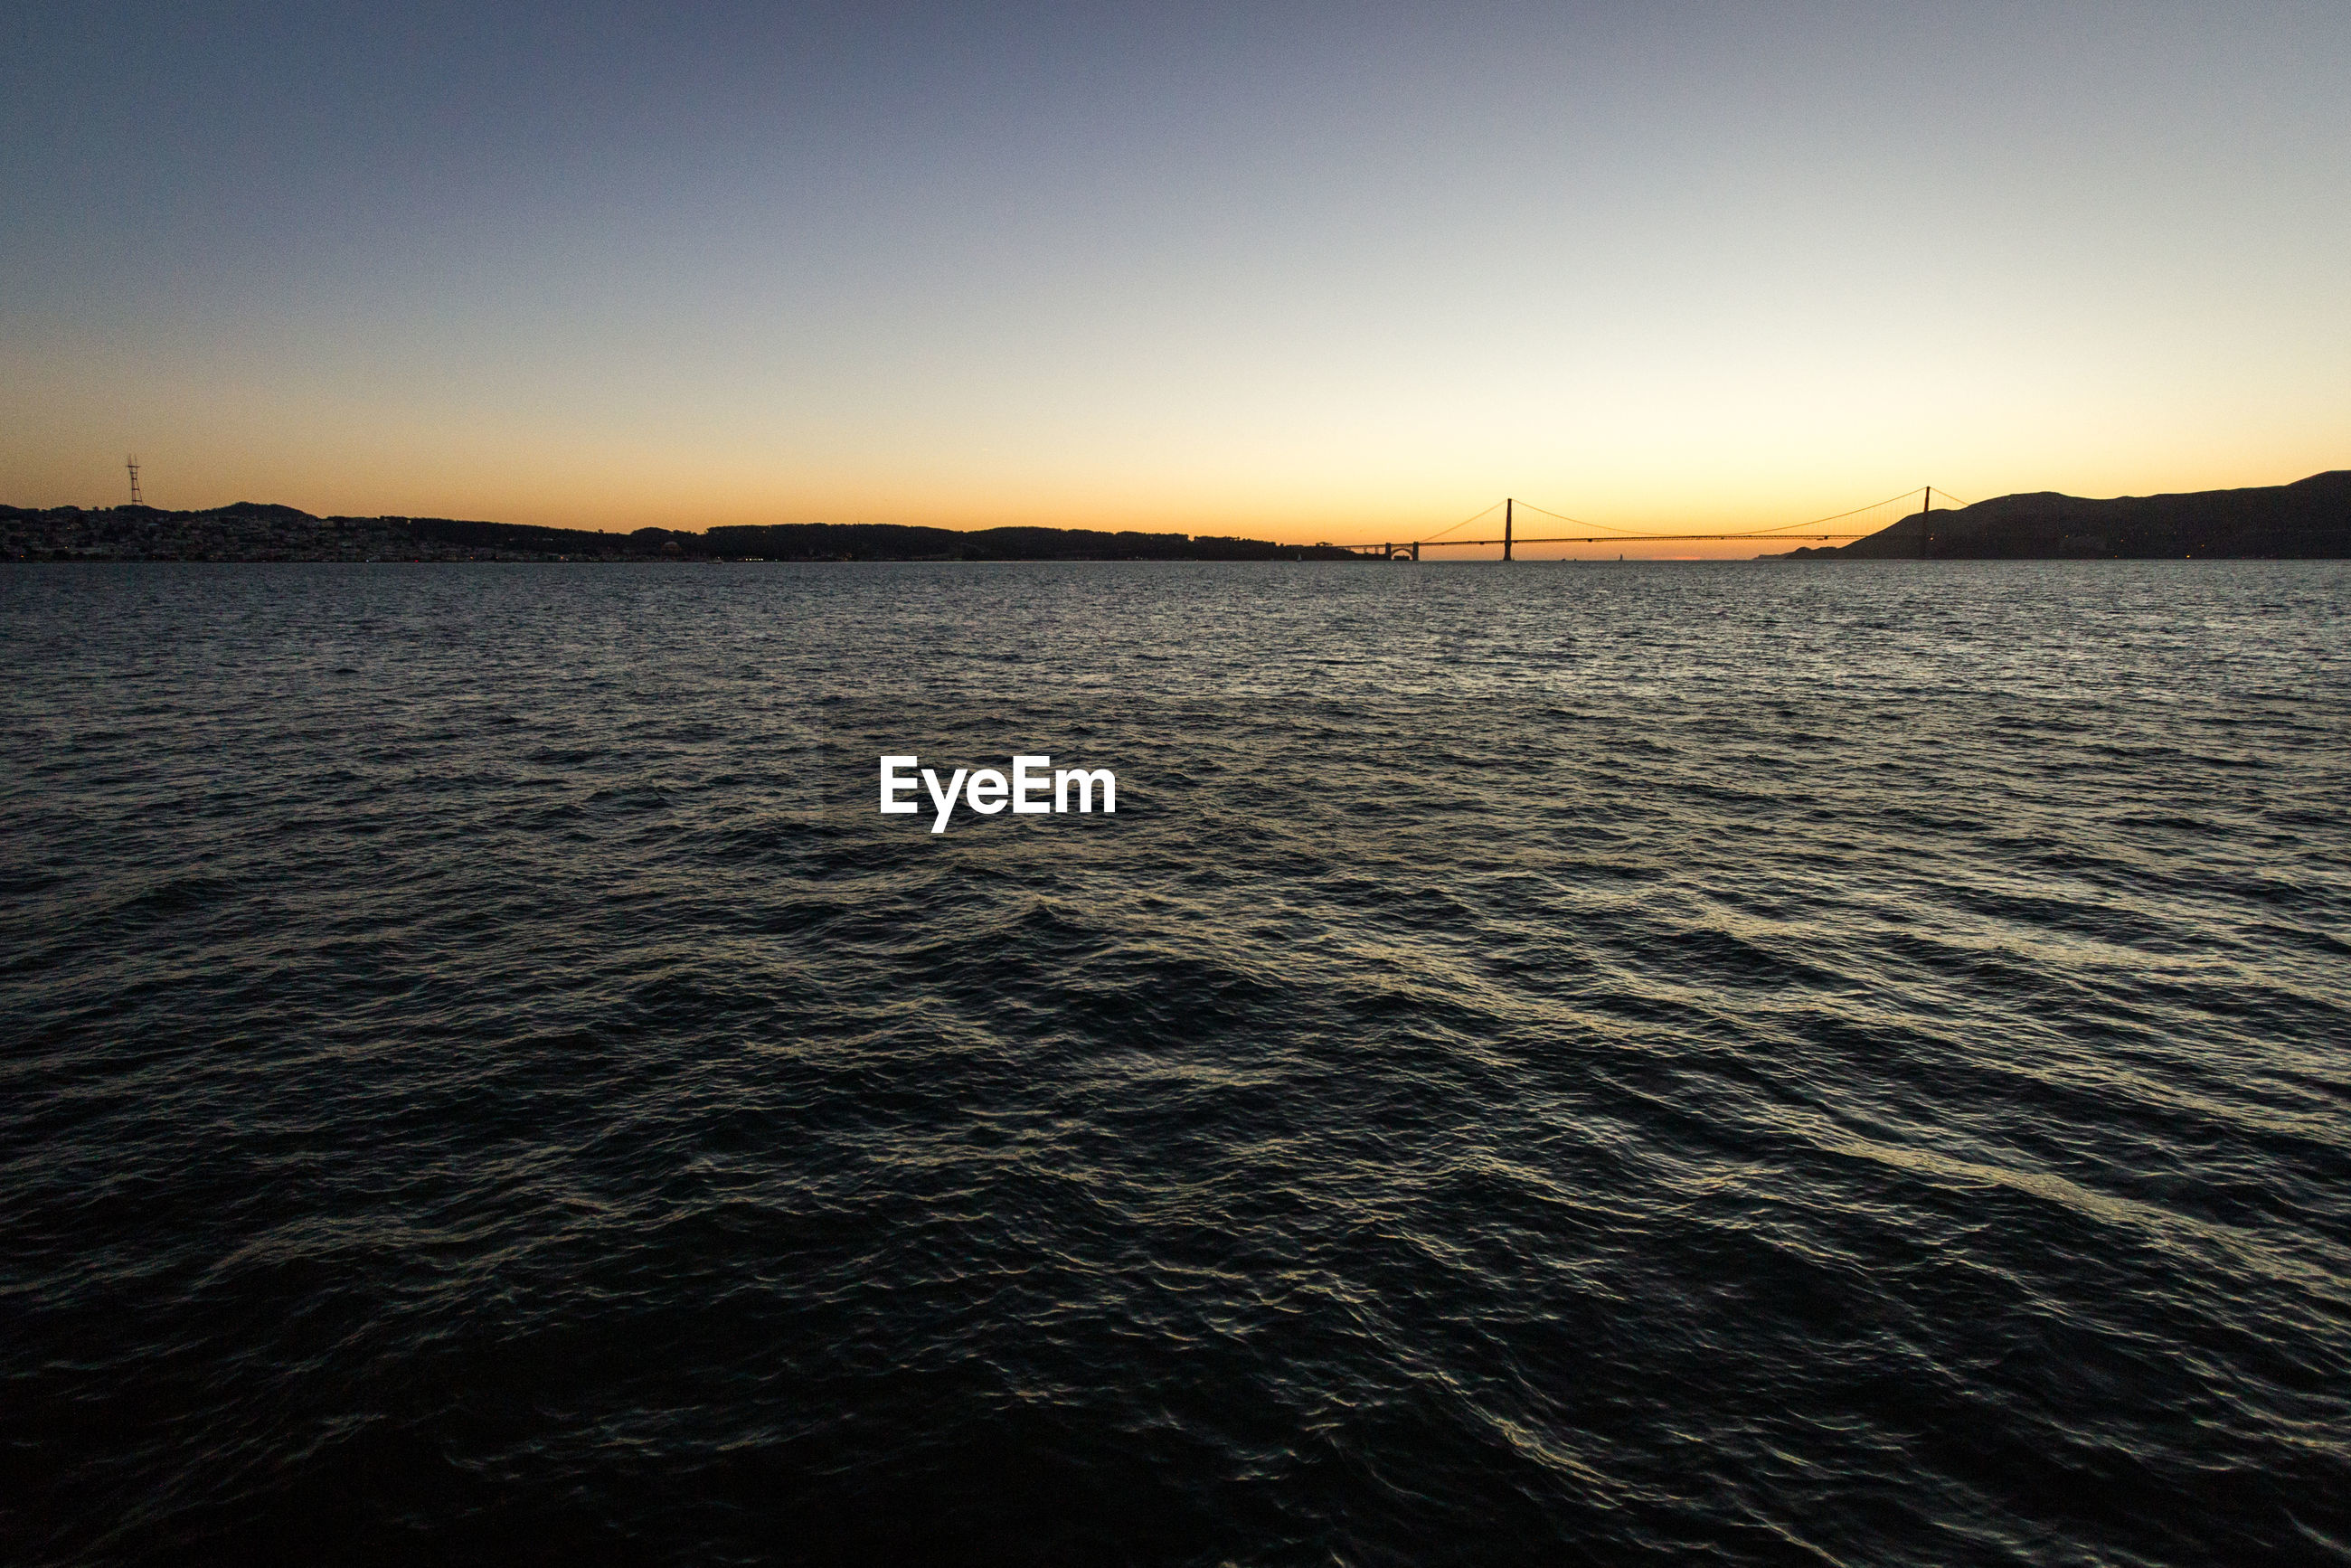 SCENIC VIEW OF SEA AGAINST CLEAR SKY AT DUSK